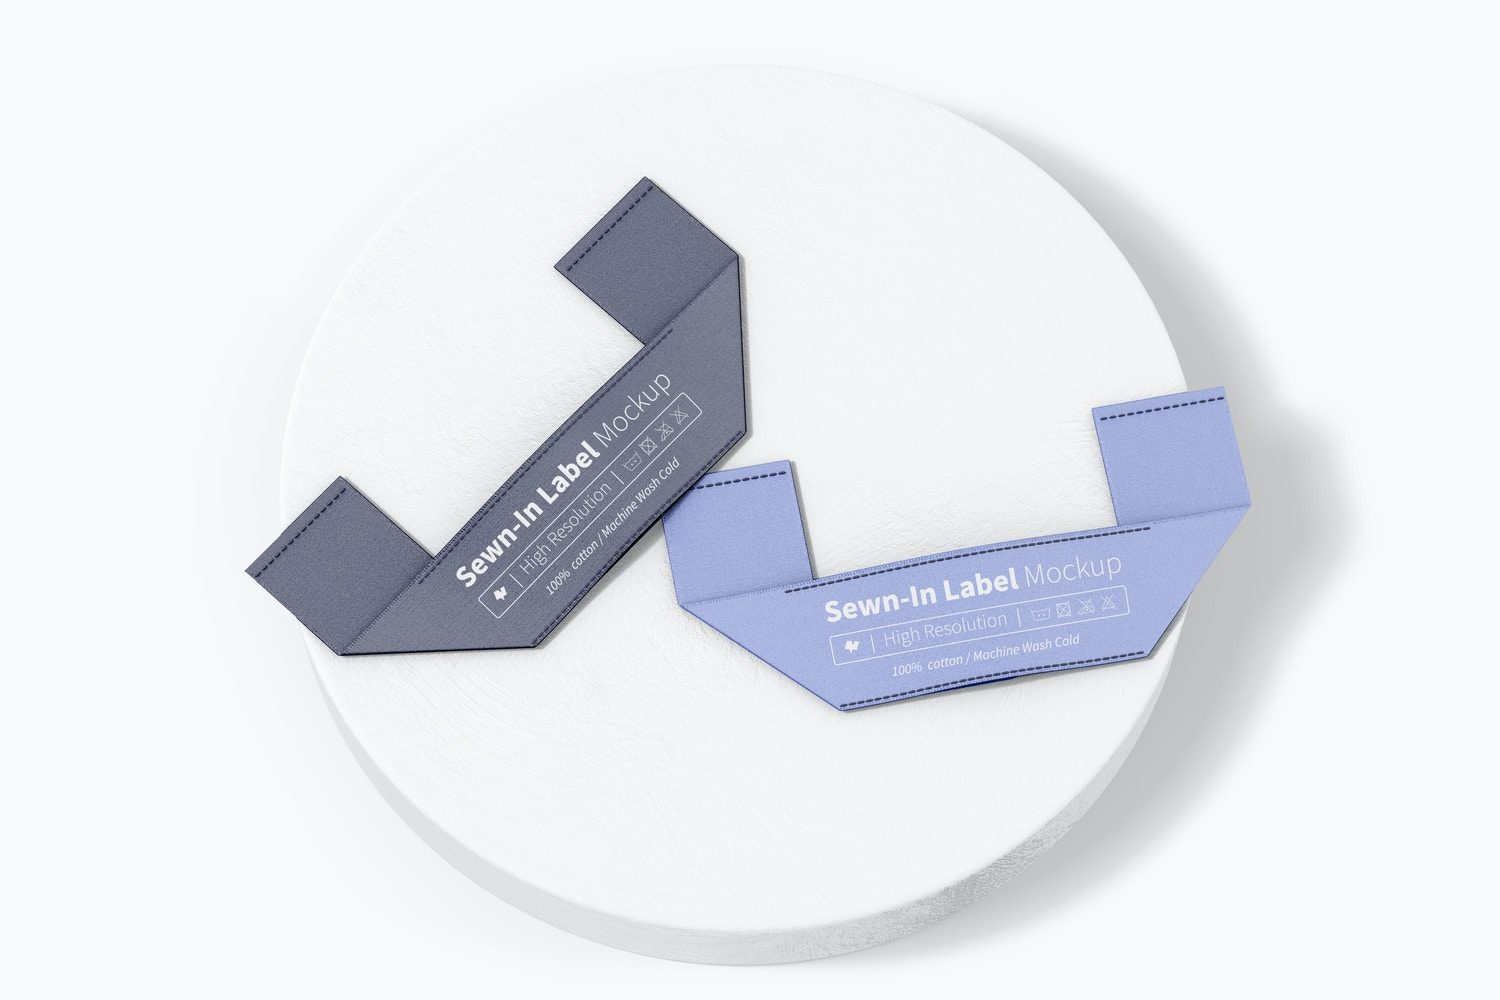 Sewn-In Label Mockup, Top View